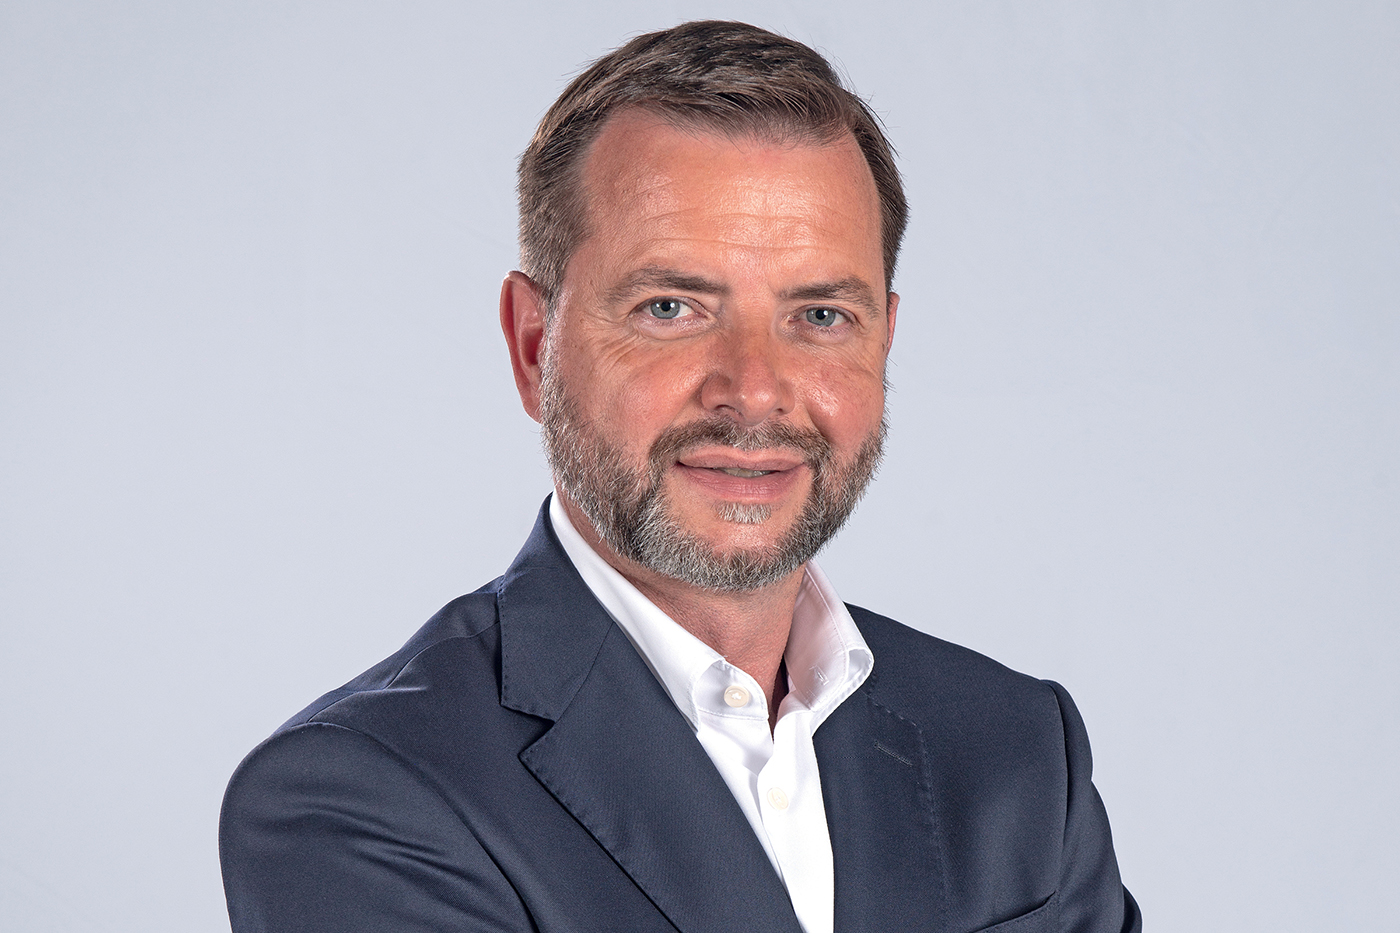 Michael Dietz, CEO of Daimler Trucks and Buses Southern Africa